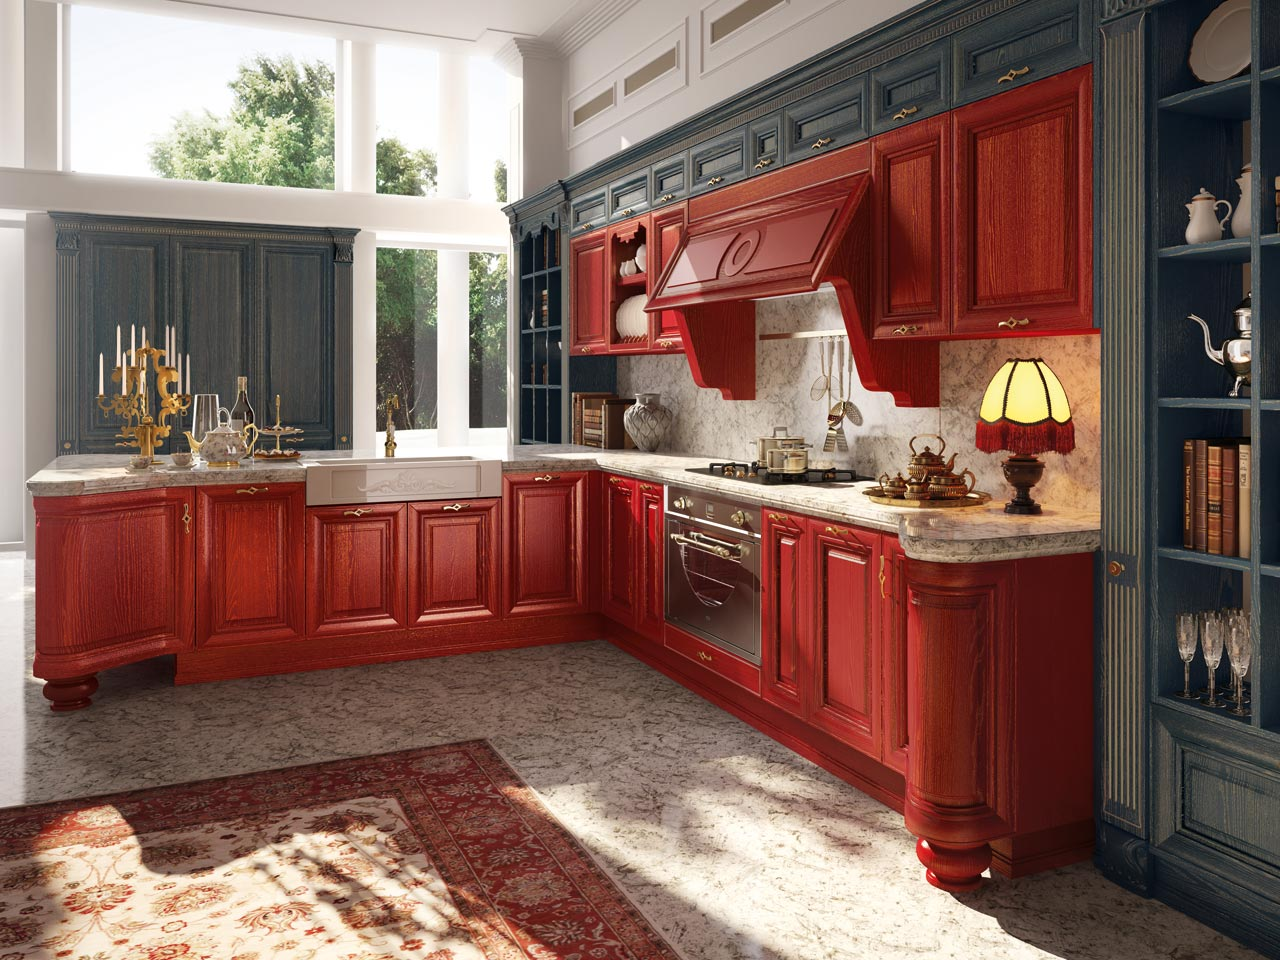 pantheon | kitchen with handles by cucine lube - Quanto Costa Una Cucina Lube